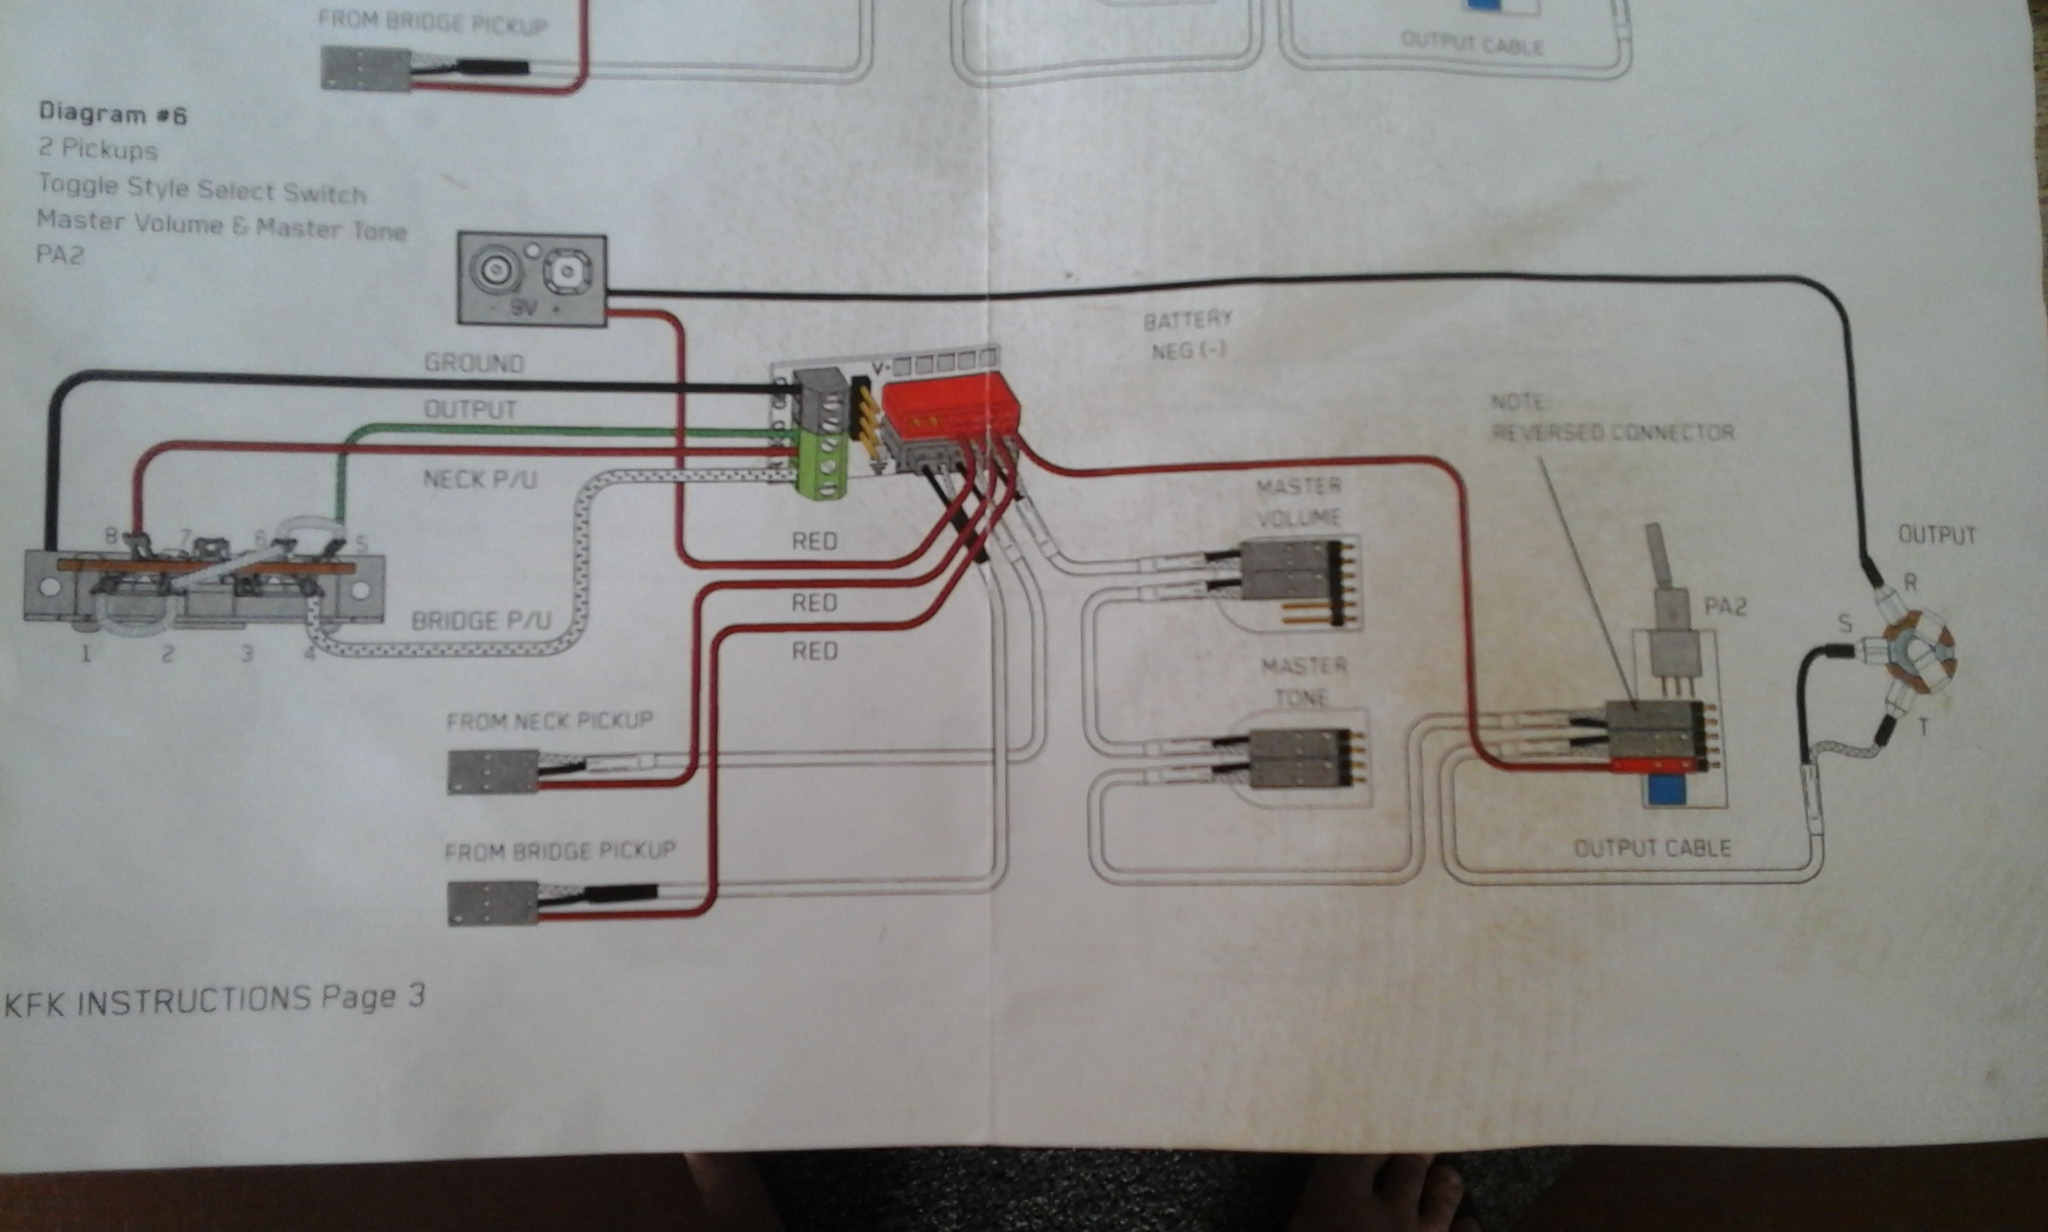 Wiring Diagram Emg Pickups - Wiring Solutions